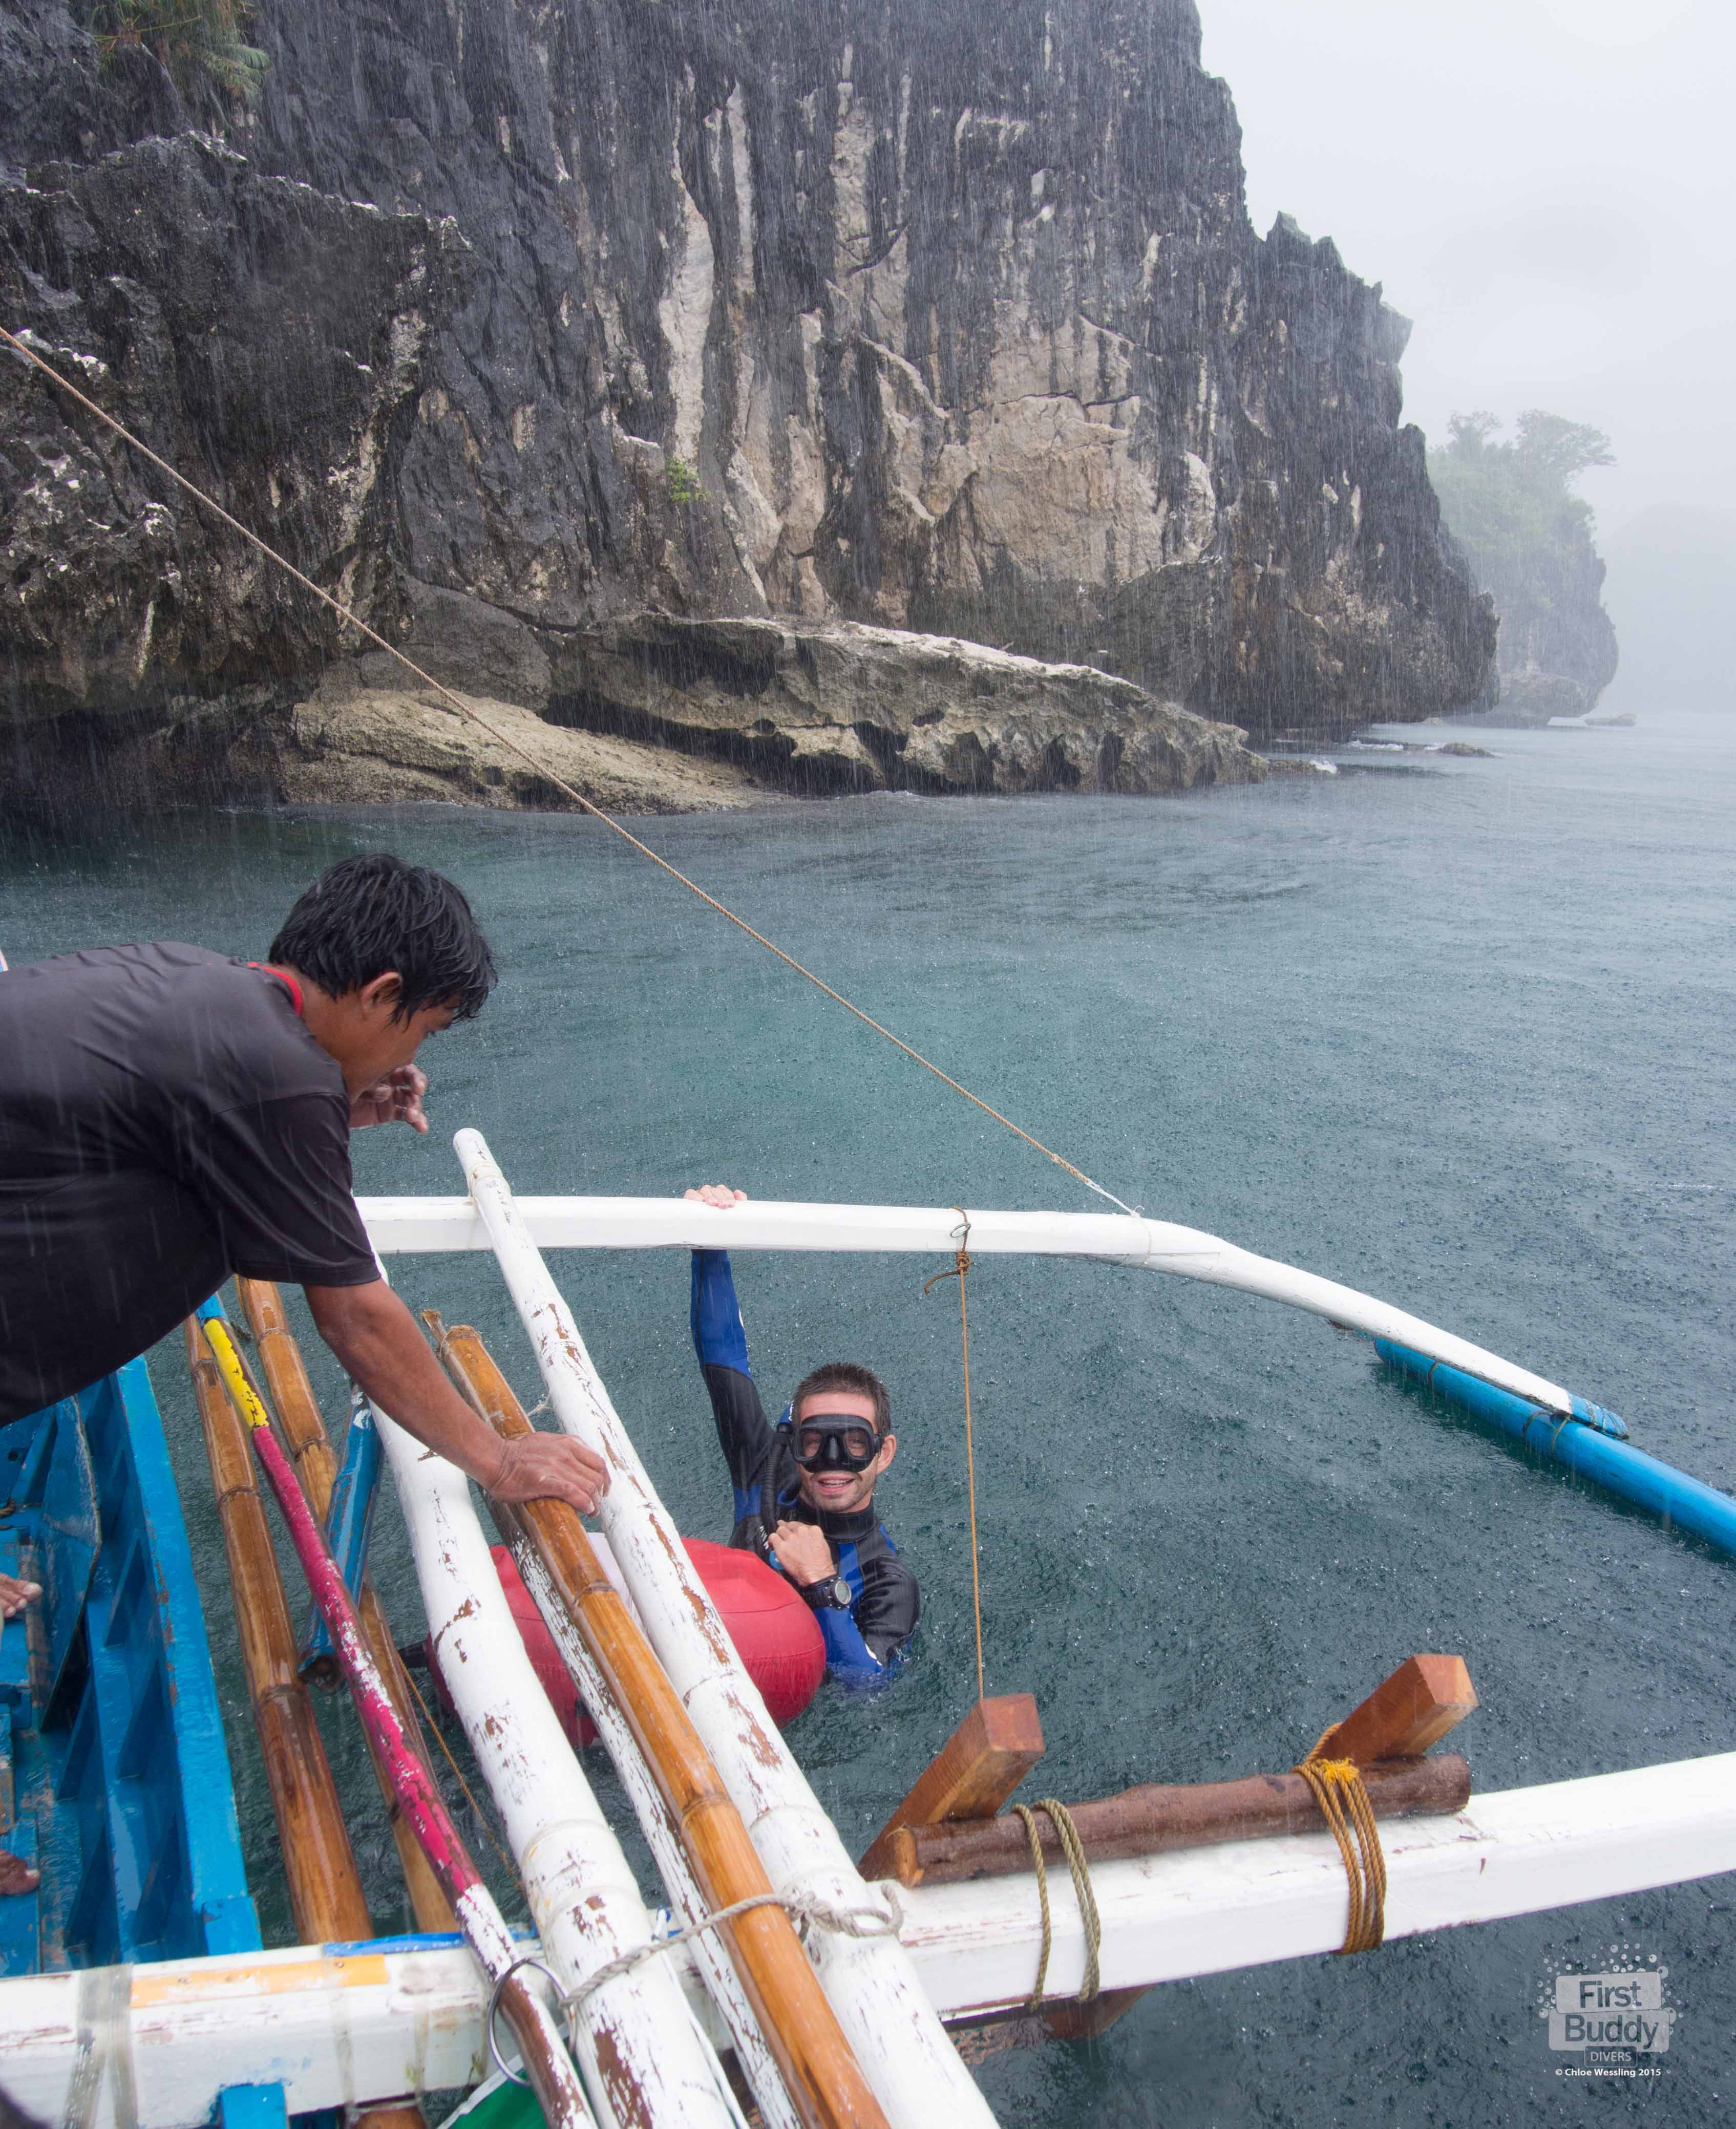 Even on a rainy day the view and the diving is still amazing at the Sheer Wall